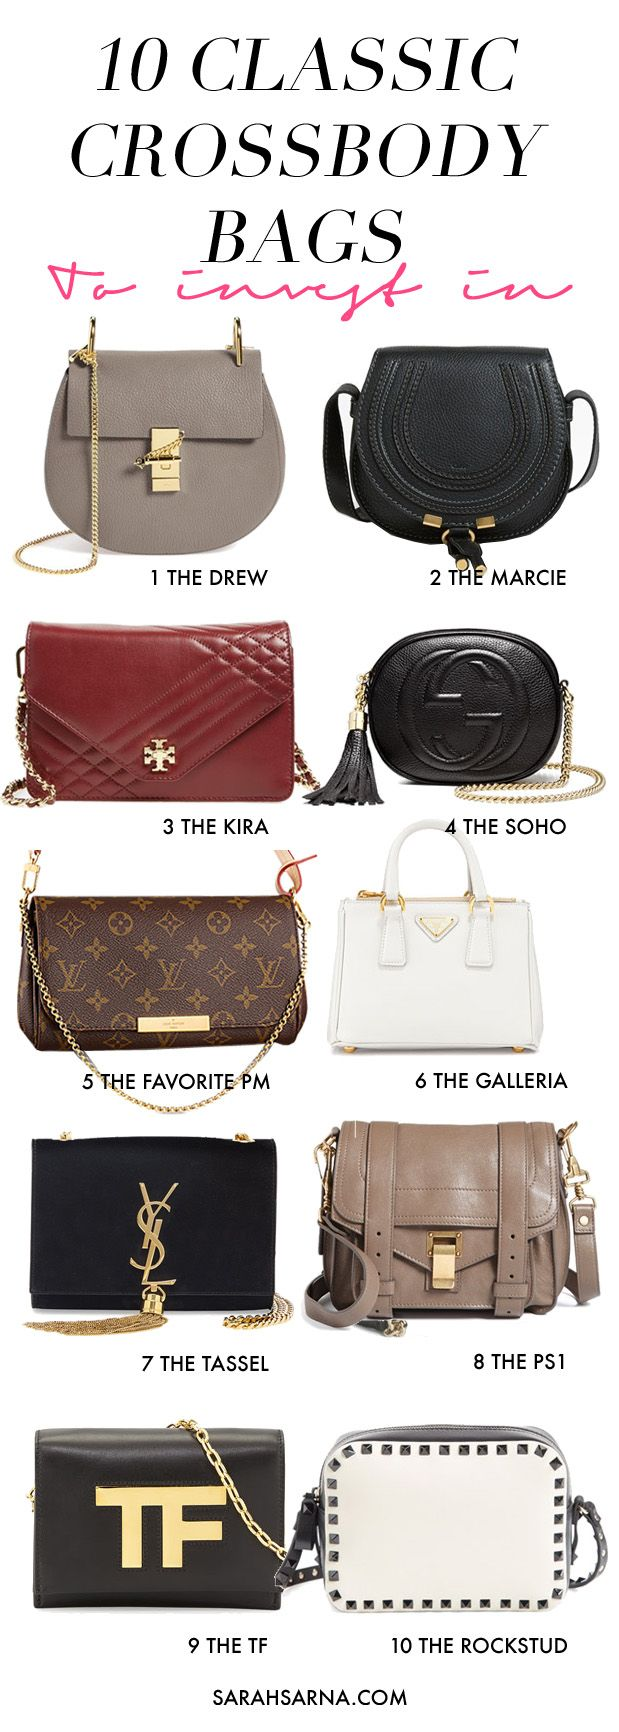 10 Classic Crossbody Bags to Invest In. Designer favorites from Chloe, Gucci, Louis Vuitton, Tom Ford, Valentino, Saint Laurent, Proenza Schouler, Prada, and more.